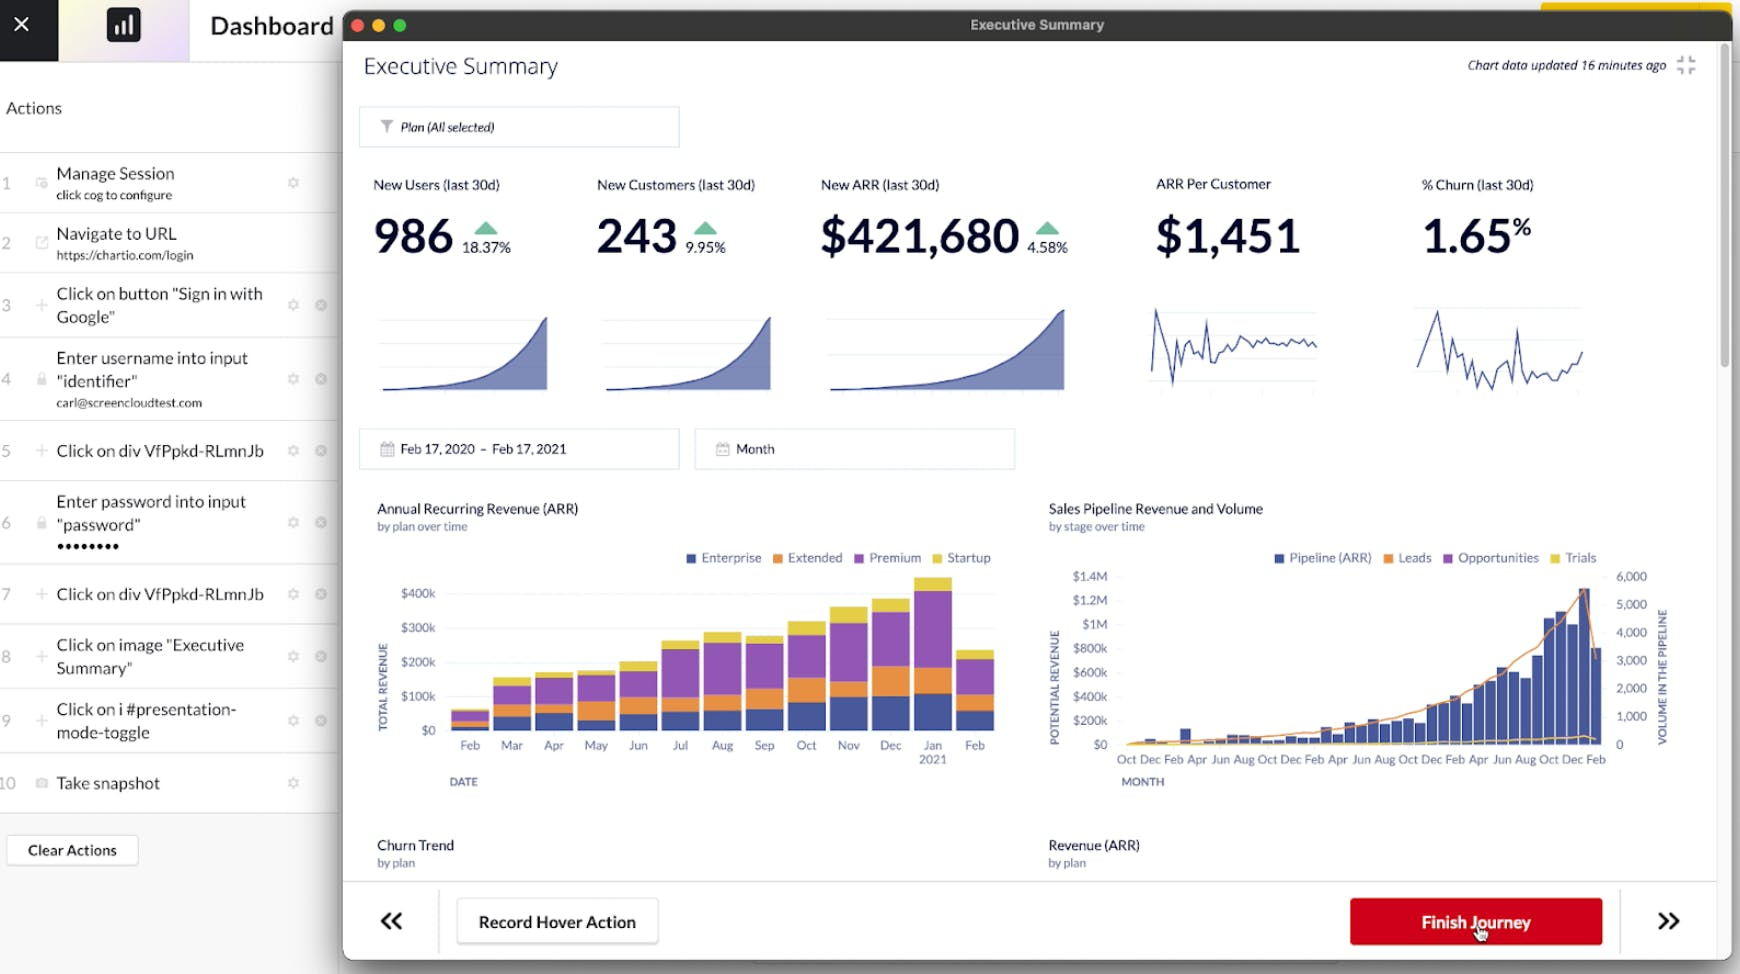 ScreenCloud Dashboards - Finish Journey Two 2.22.2021.png